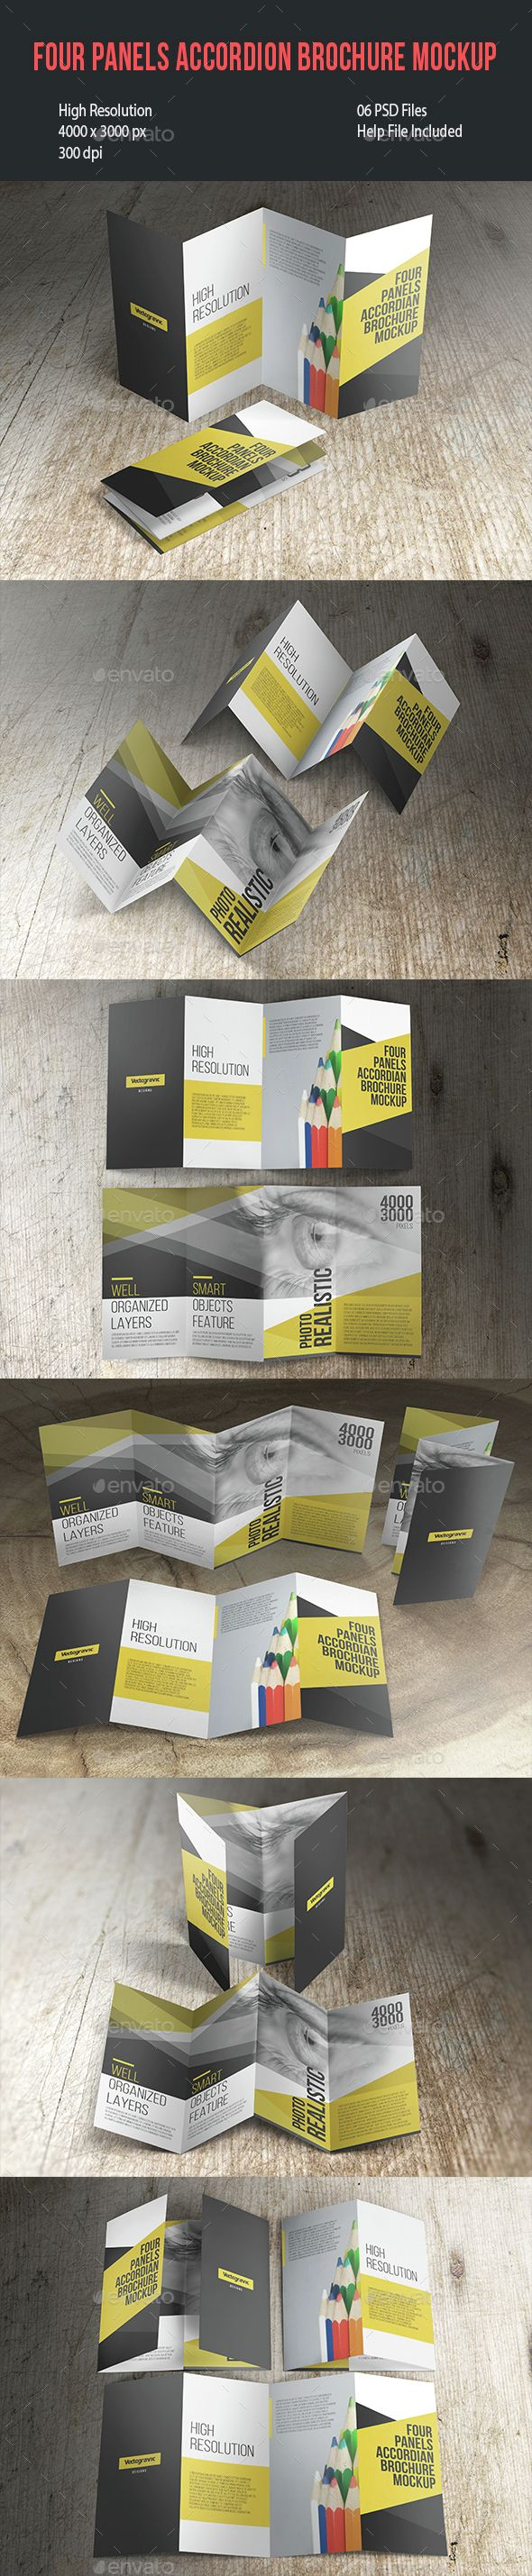 Four Panels Accordion Brochure Mockup. Download here: graphicriver.net/...